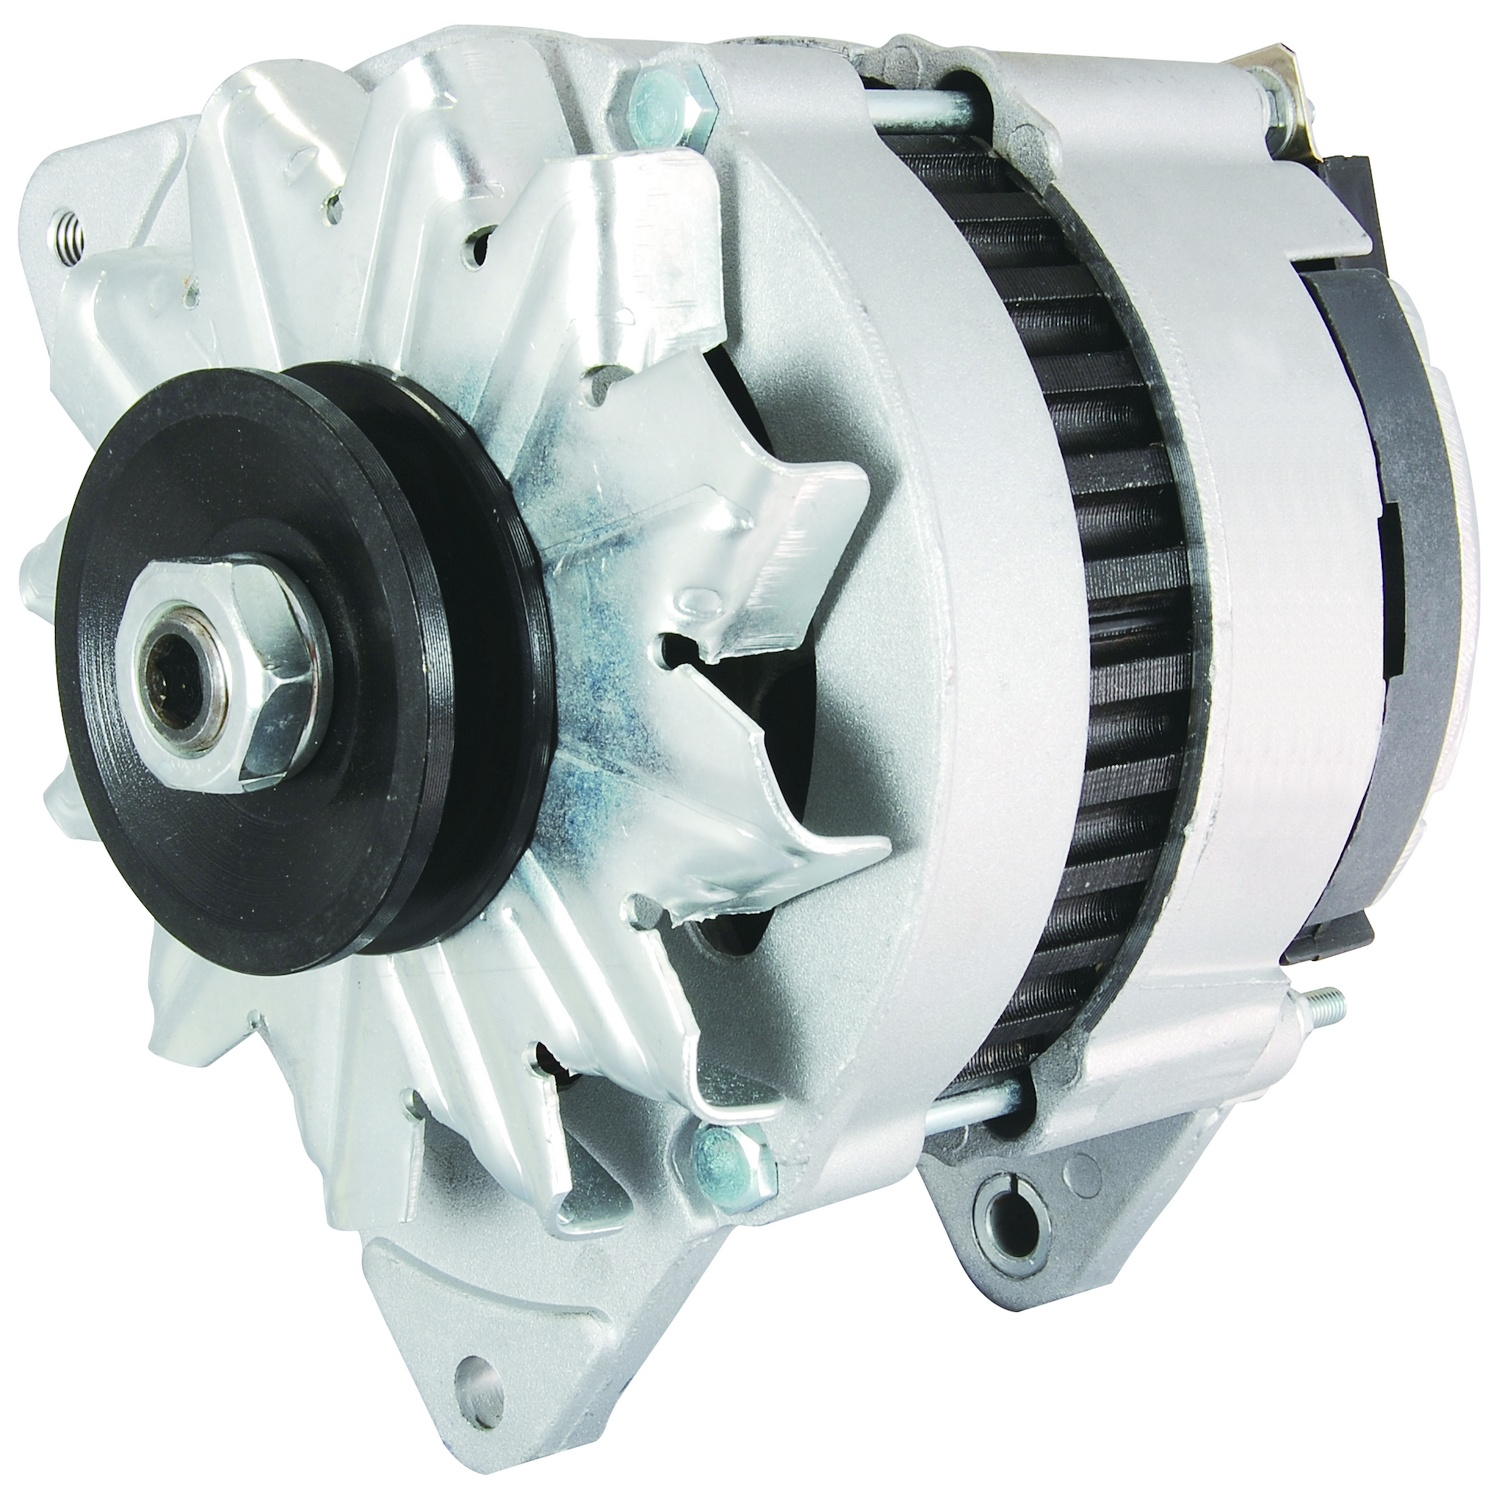 Inboard Alternator Marine | Motor Engine Power - Sterndrive Replacement